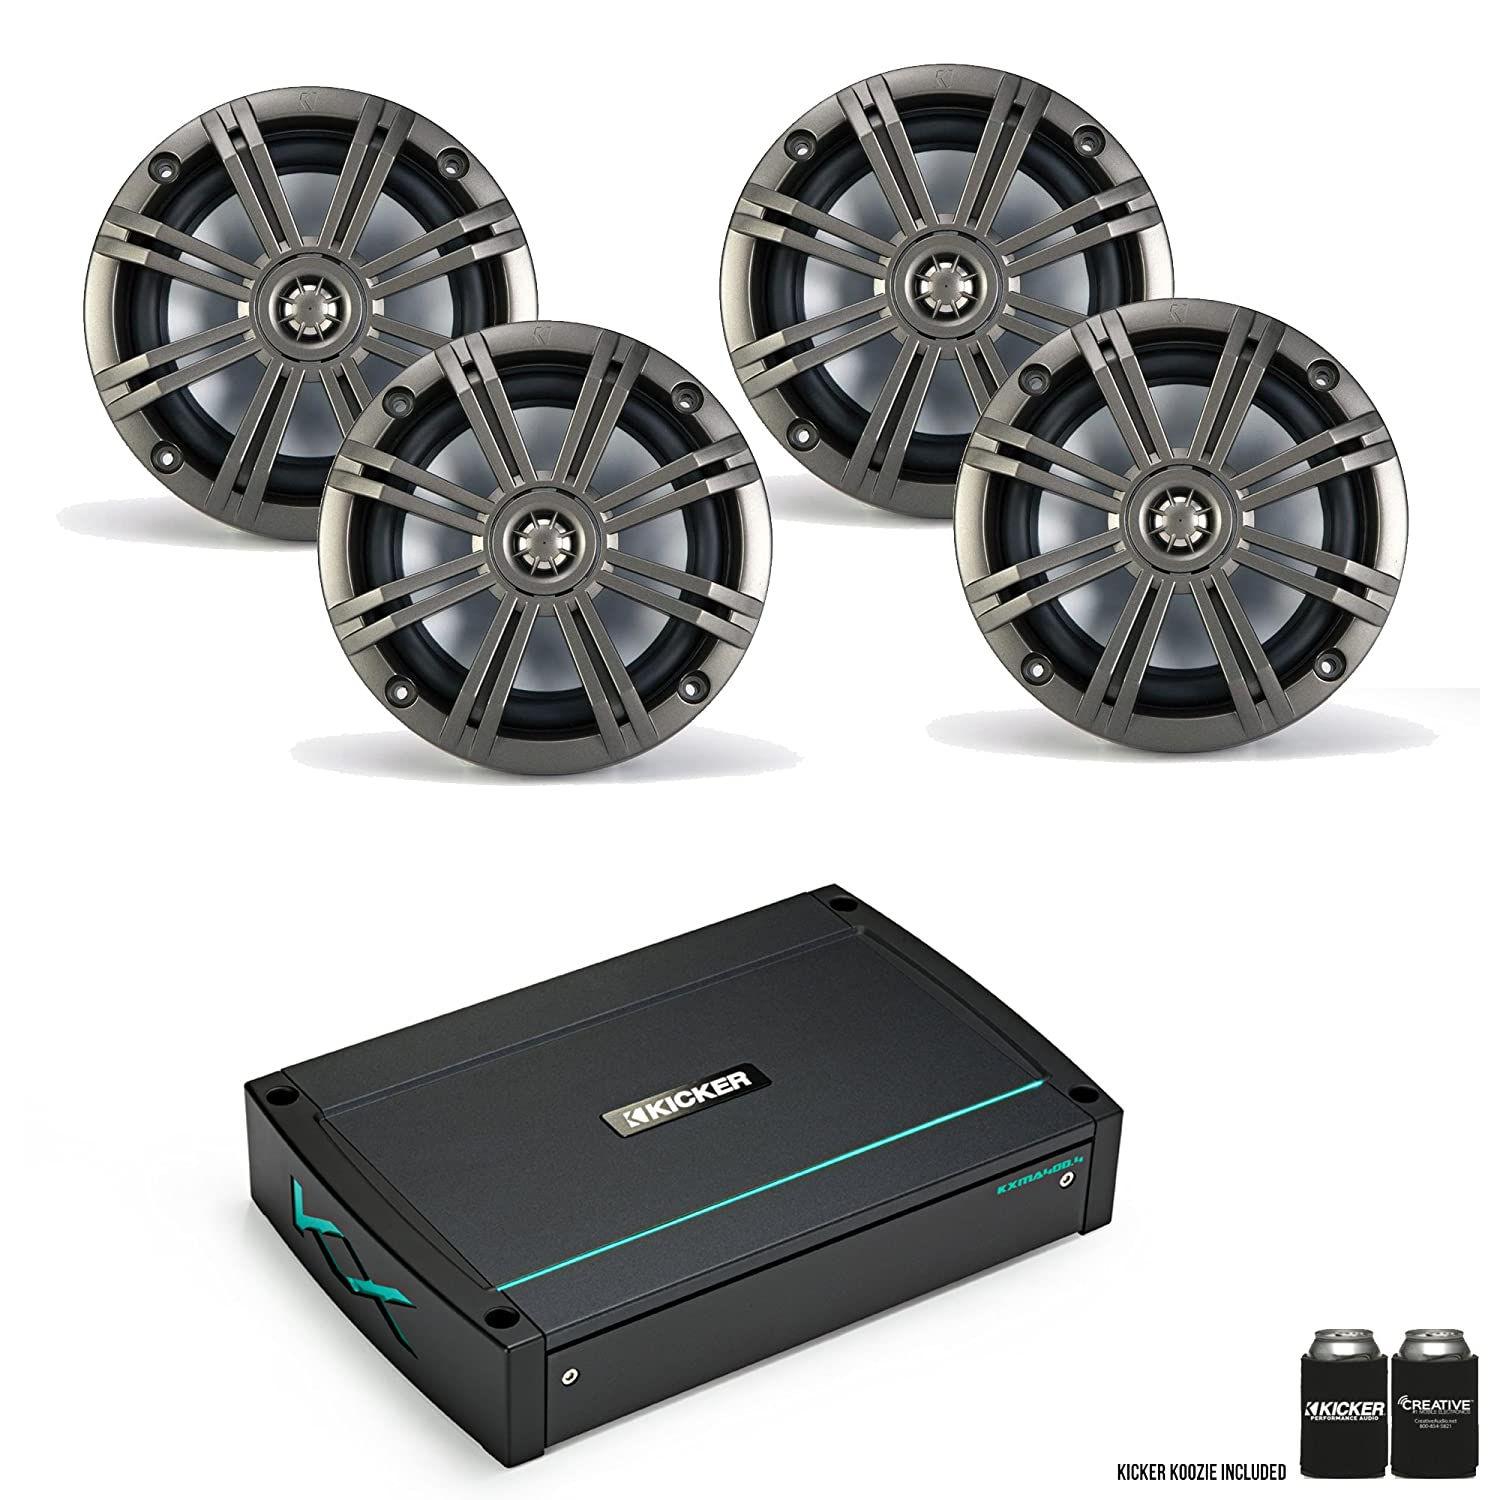 Kicker 44 x kma4004 400ワットAmp with 2つのペアのkm654cw 6.5